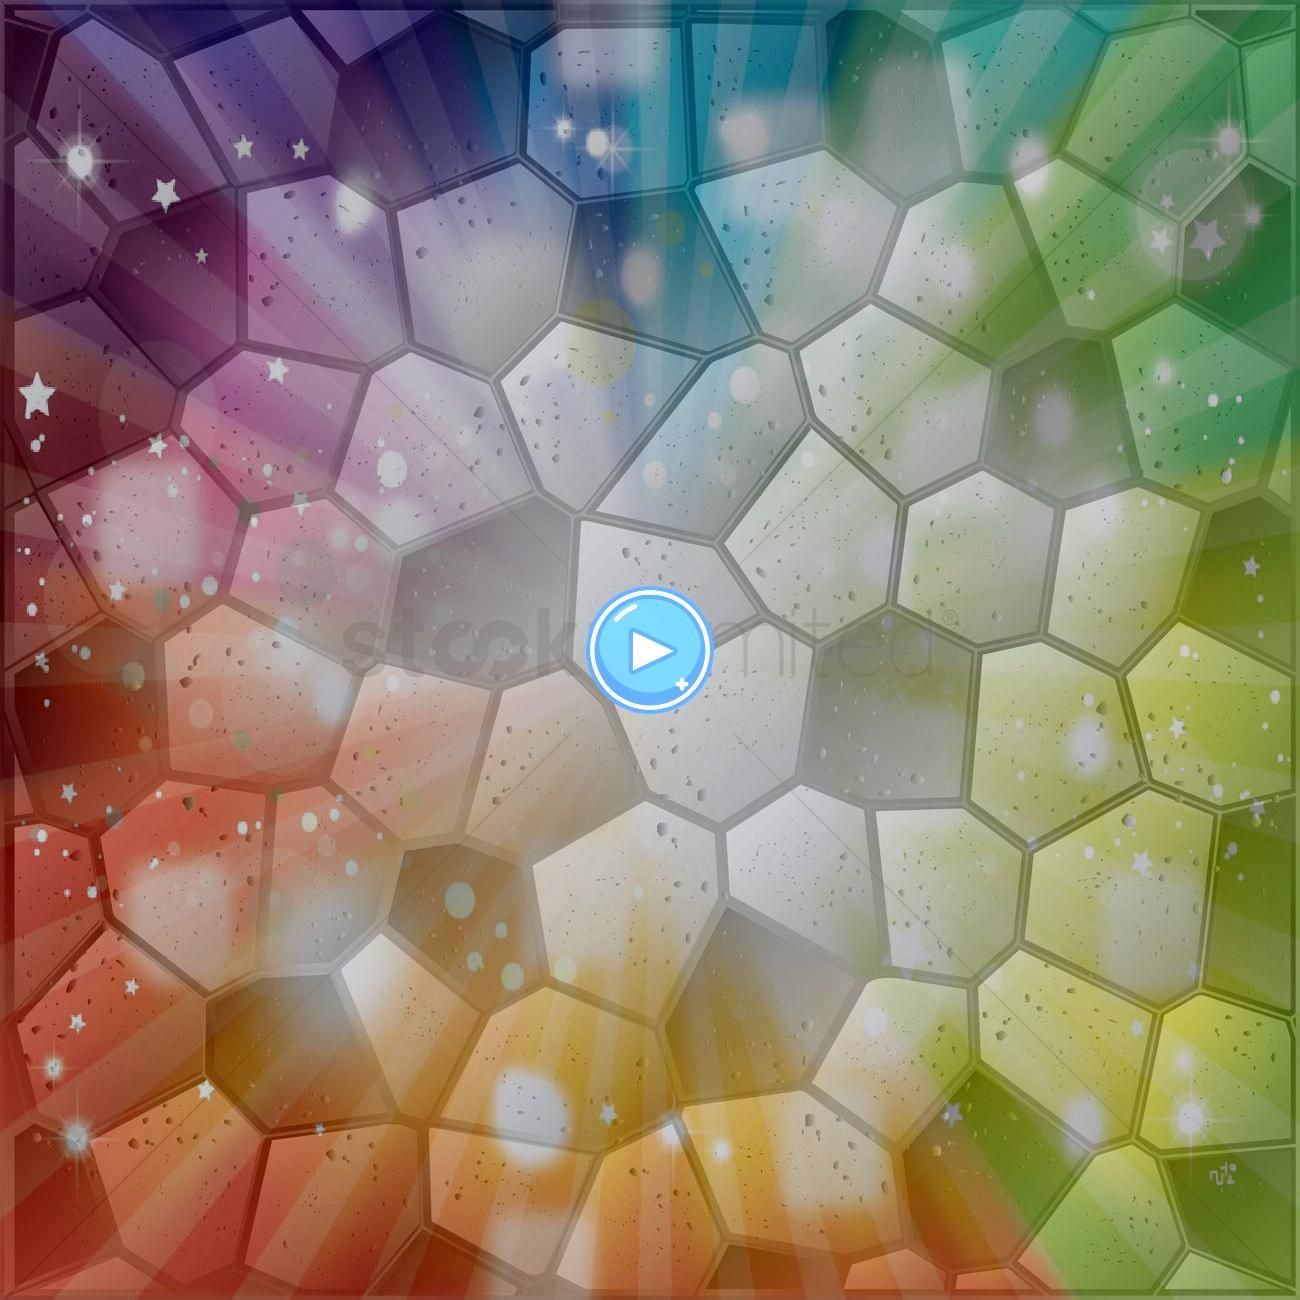 tiles background vector illustration Stones tiles background vector illustration  Film strip vectors stock clipart  Abstract faceted wallpaper vector illustration  Modern...